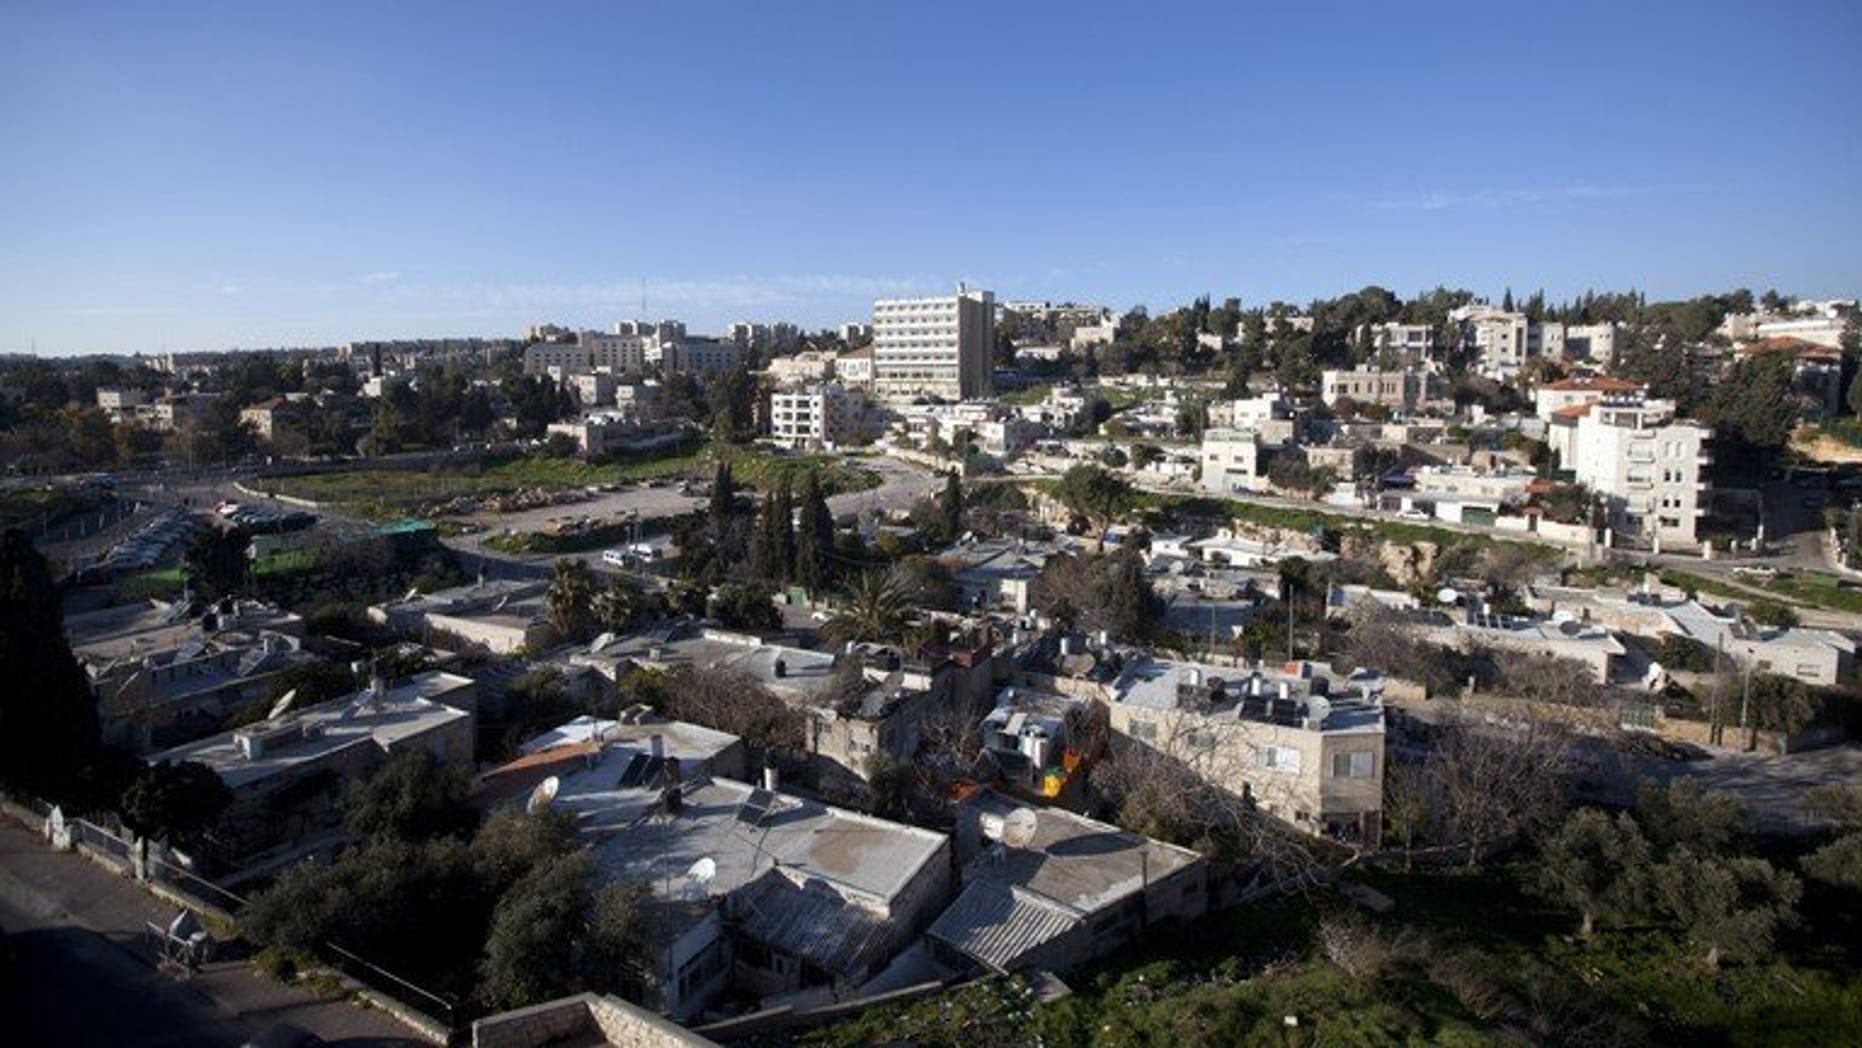 The Sheikh Jarrah neighborhood in mostly Arab east Jerusalem on February 20, 2013. An Israeli court said Sunday it has jailed for 30 months two senior Hamas members who took refugee inside Red Cross east Jerusalem offices in Sheikh Jarrah for a year and a half.